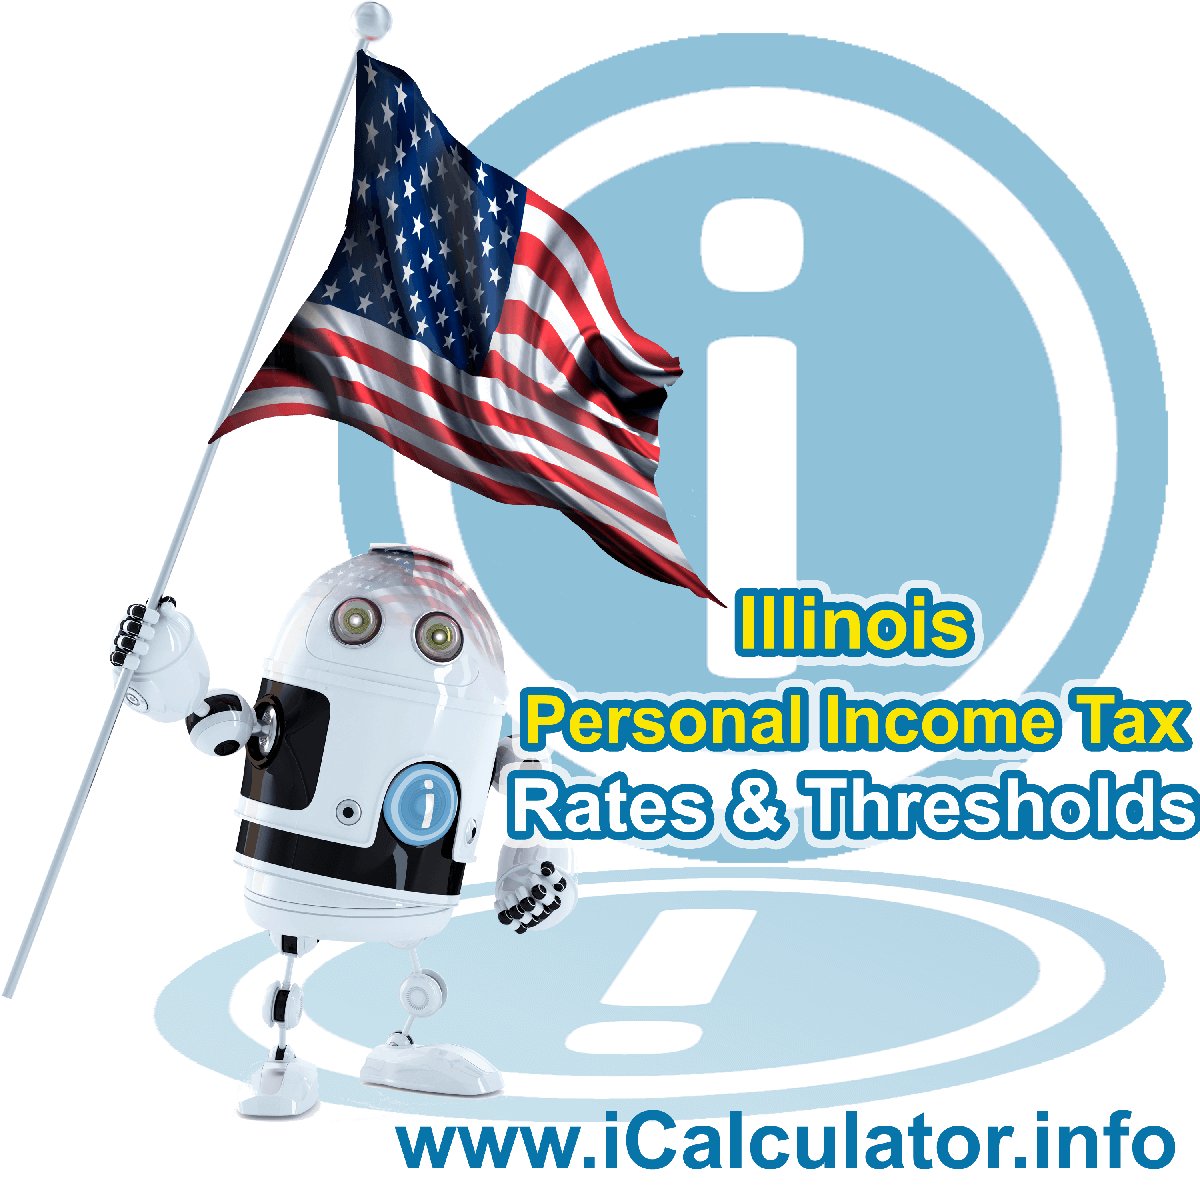 Illinois State Tax Tables 2018. This image displays details of the Illinois State Tax Tables for the 2018 tax return year which is provided in support of the 2018 US Tax Calculator